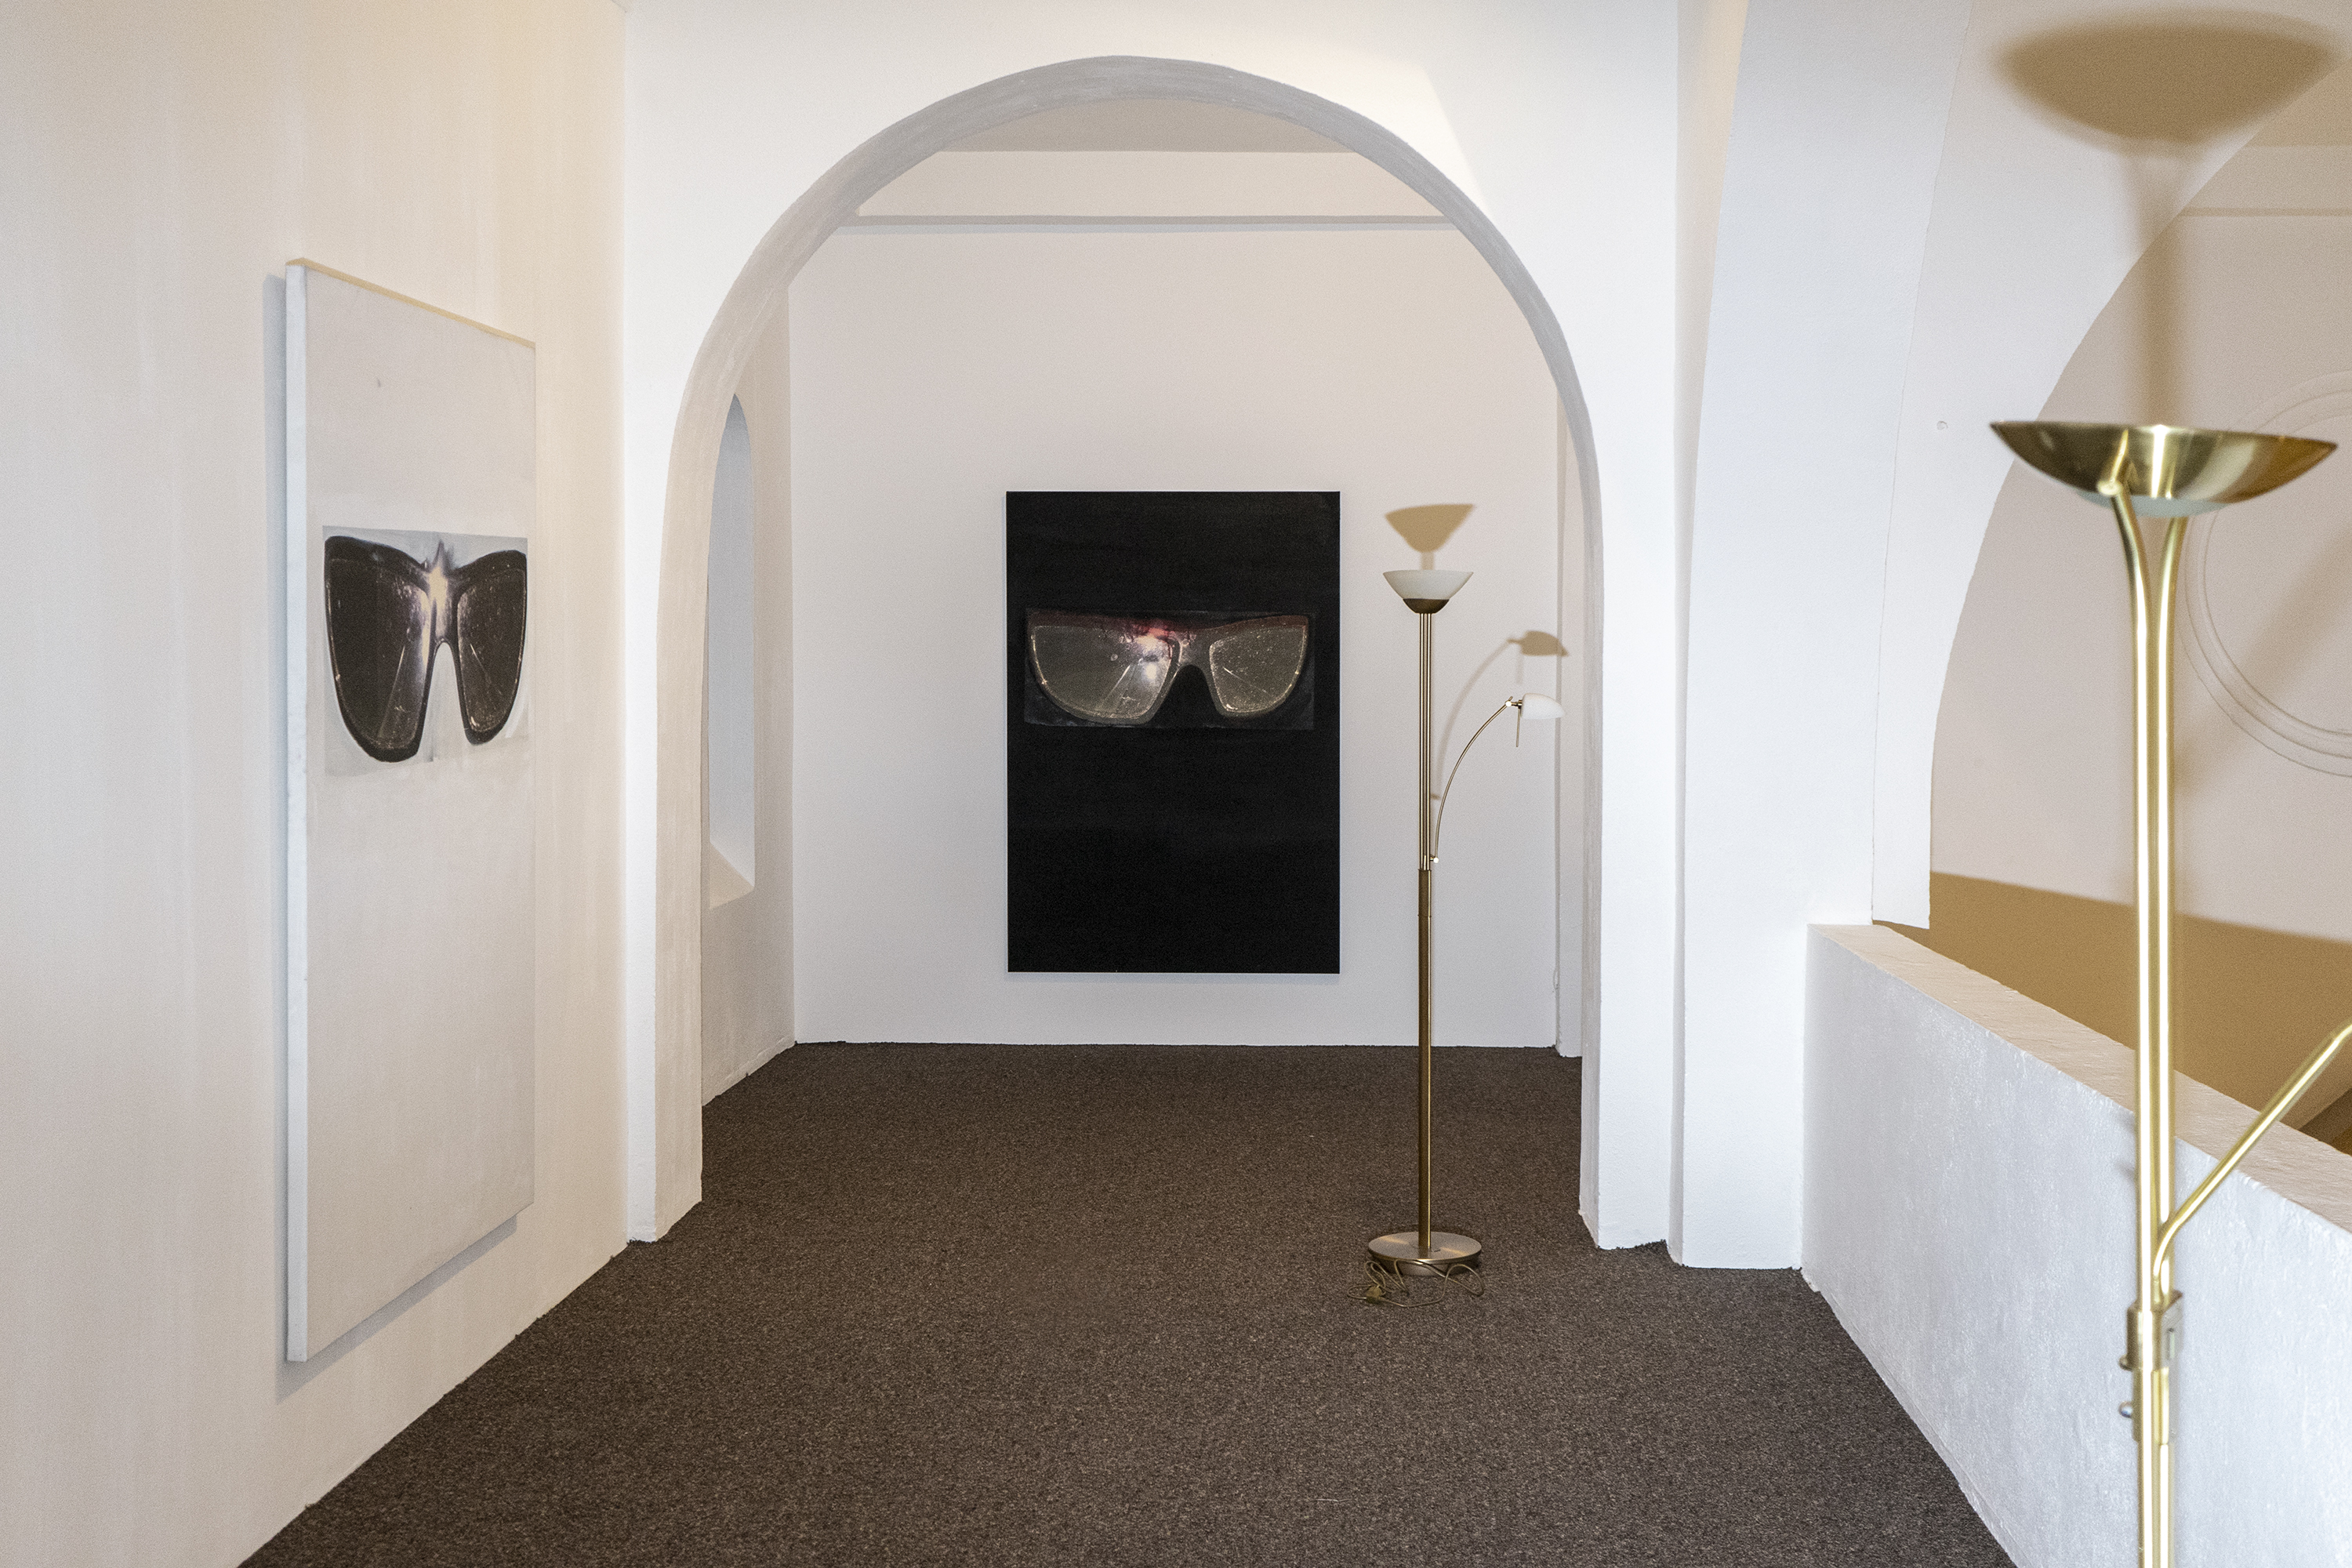 Vue de l'exposition Love and die de Tobias Spichtig, CAC-La synagogue de Delme, 2019. Photo : Tobias Spichtig.